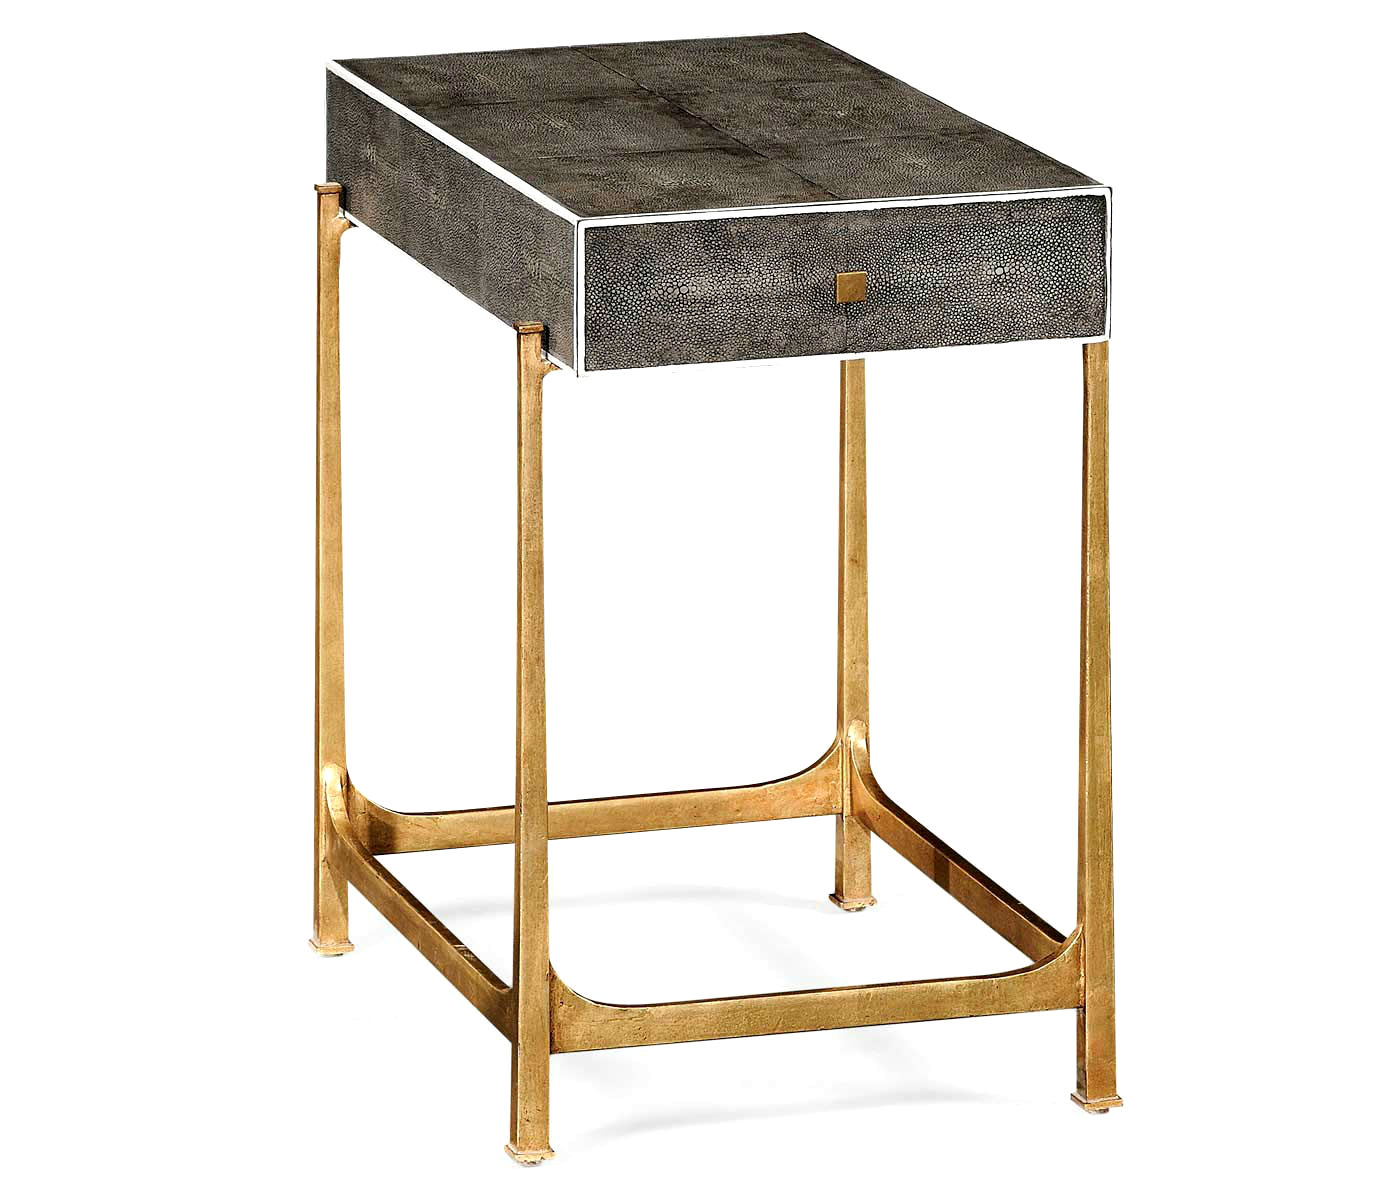 shagreen side table end accent tables gold console tall art deco iron black gilded partner coffee available hospitality residential mirrored set rose patio swing circular cover